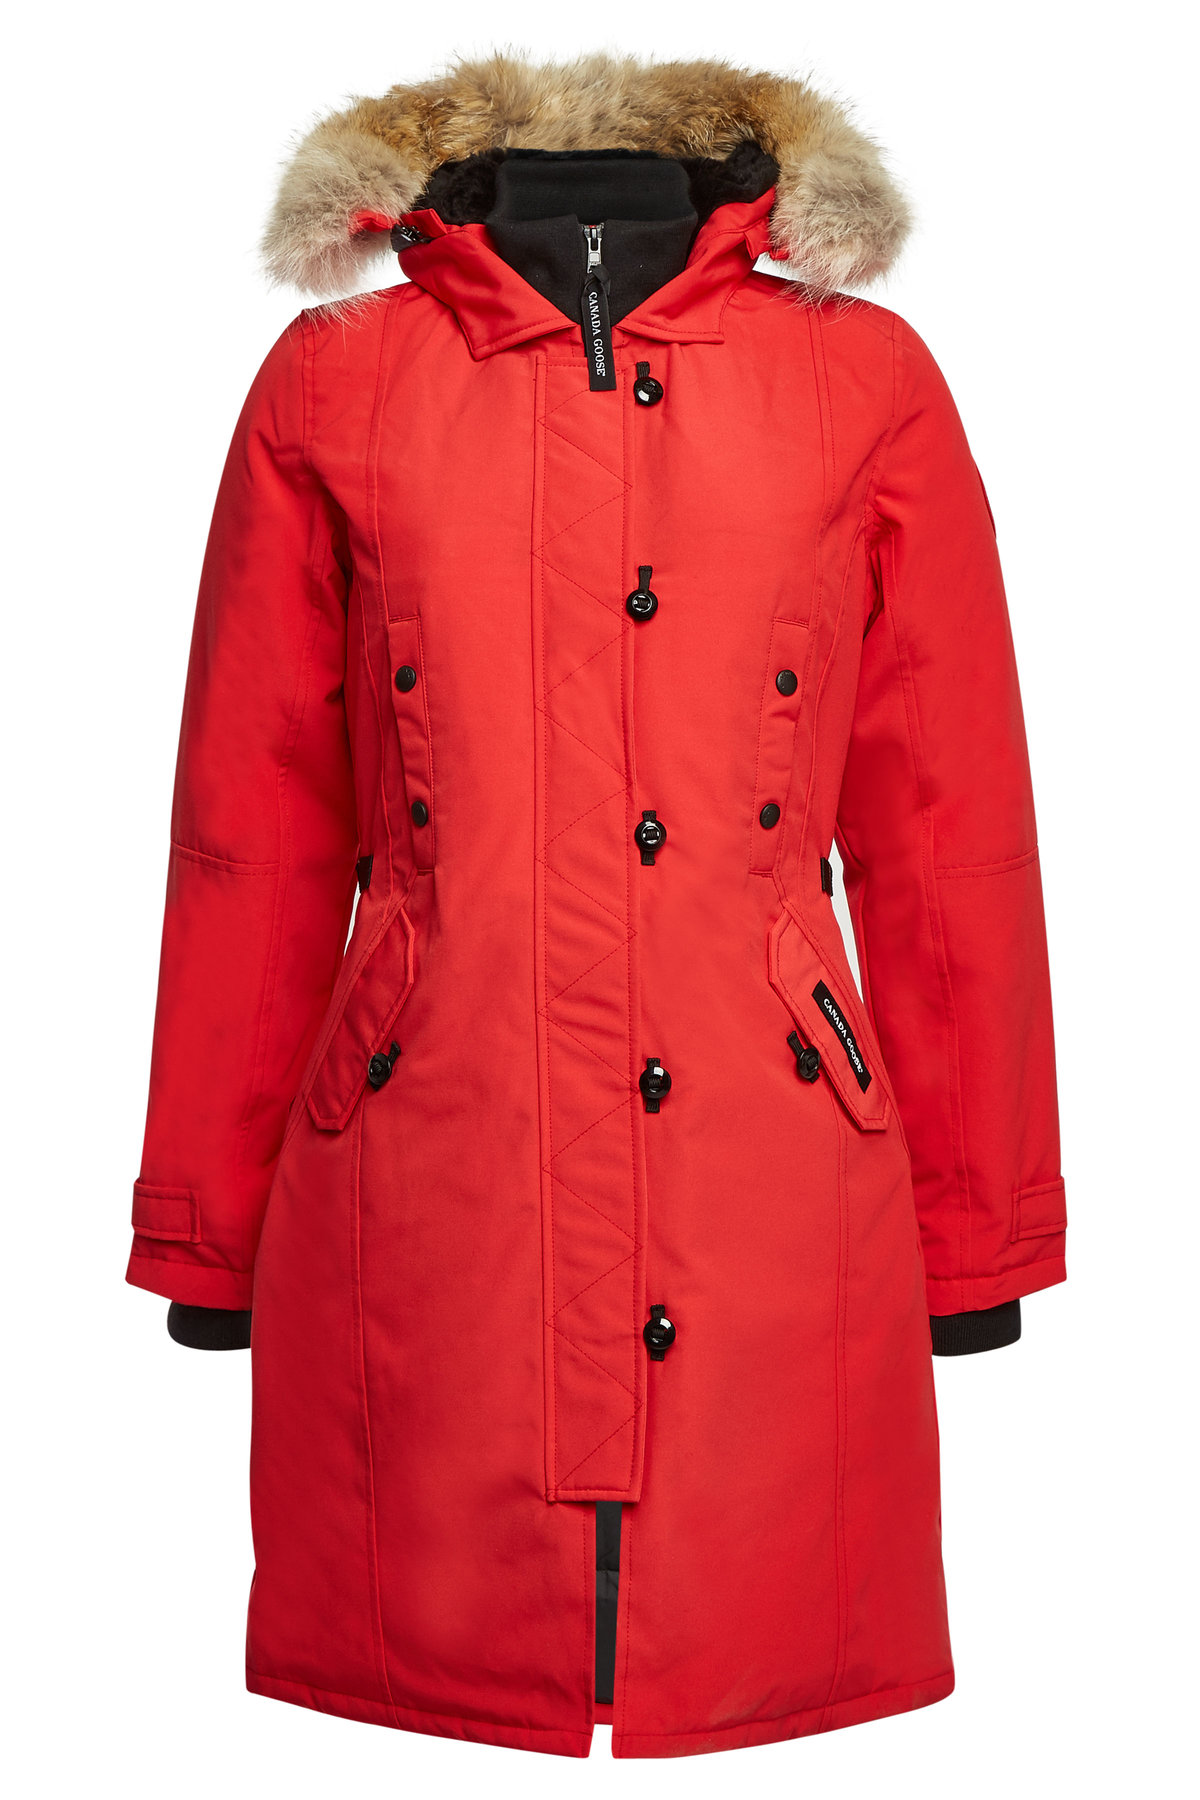 Canada Goose Kensington Down Parka With Fur-trimmed Hood In Red